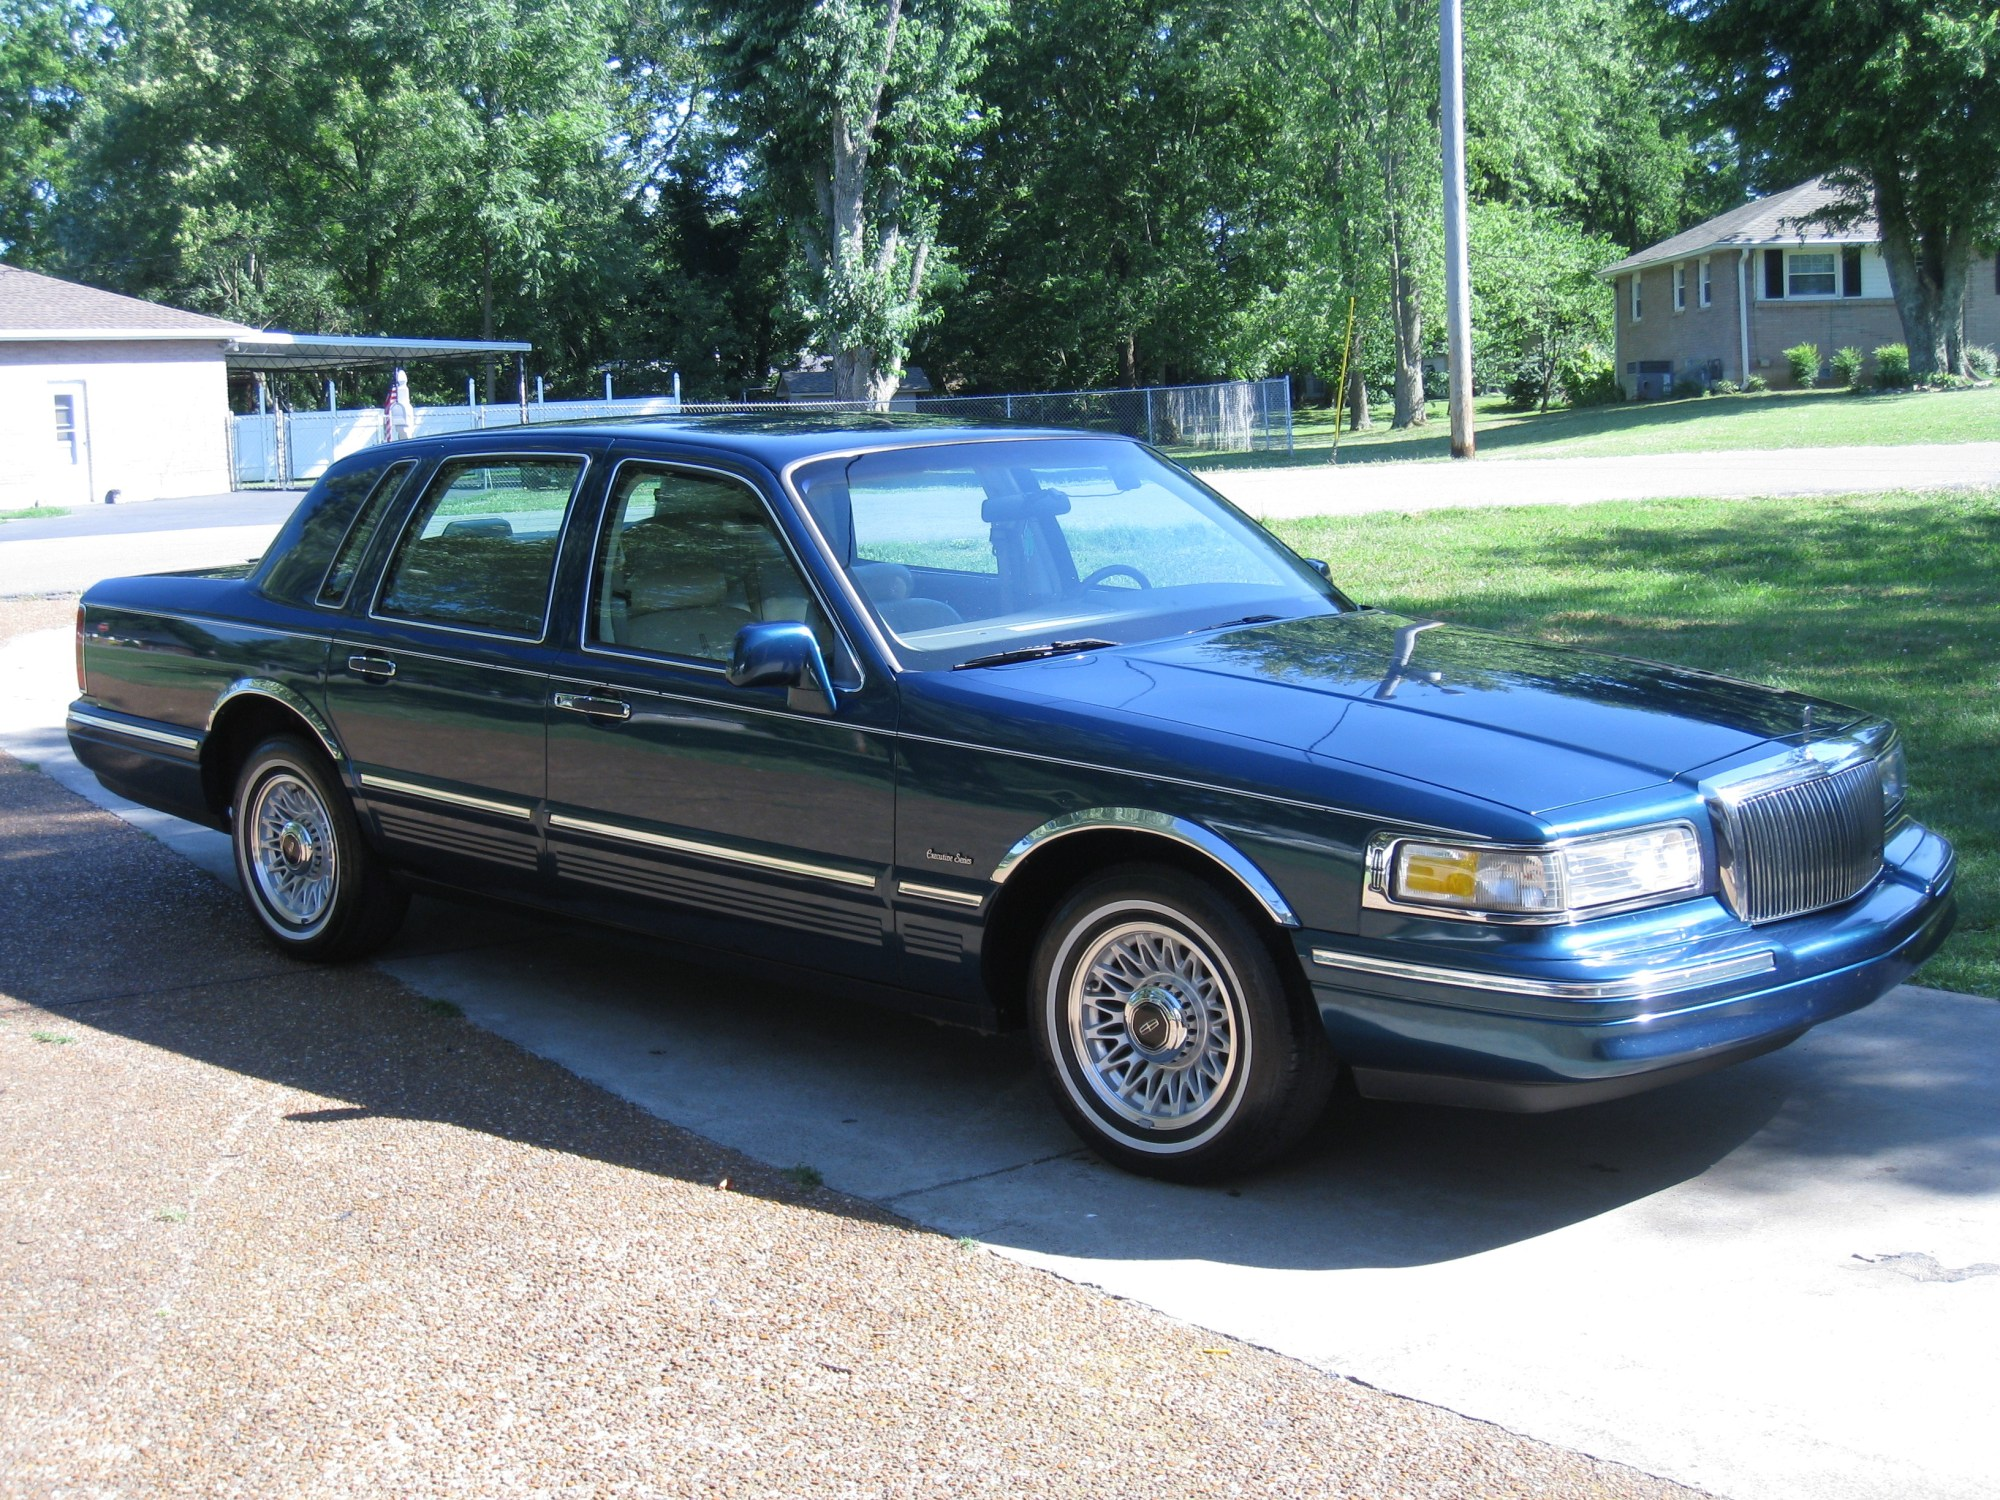 hight resolution of 90lincolntc 1997 lincoln town car 32820470013 original 90lincolntc 1997 lincoln town car 32820470014 original